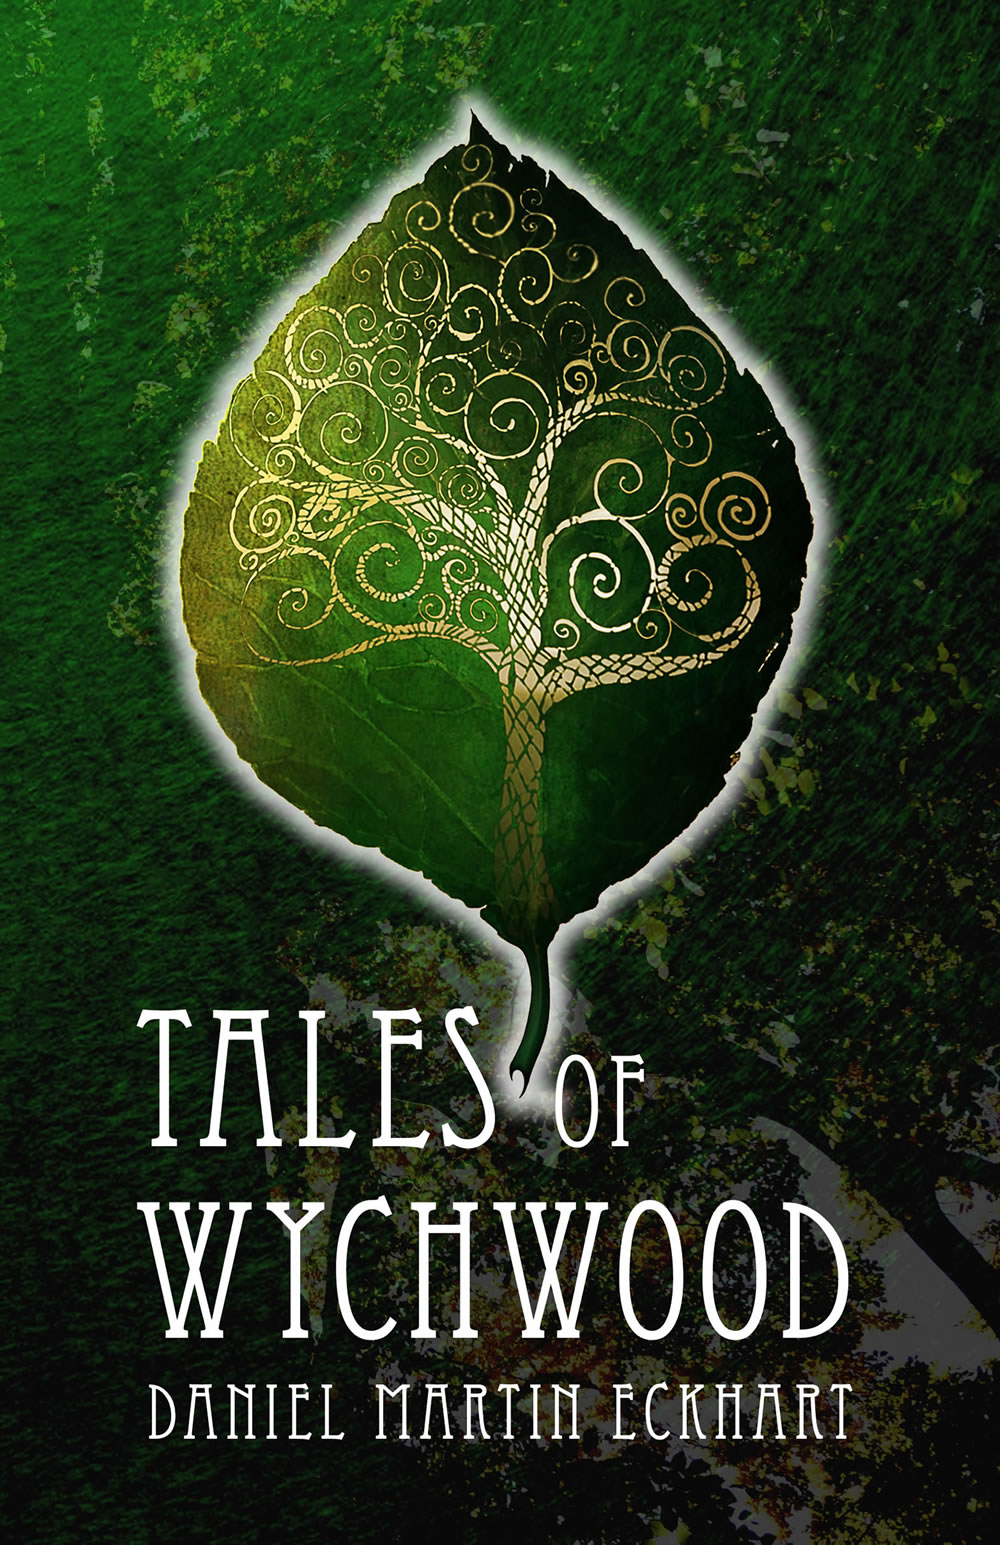 TALES OF WYCHWOOD  YA, 274 pages Amazon KDP, Feb 2017  There are many special places in the world, places rich with history and legend, blood and life, love and death. Of all of those many places, none is more special than Wychwood Forest. Wychwood, the small remnant of an ancient forest, is a prison that holds fierce warrior elves, bloodthirsty headhunter dwarves and darker creatures, still. For hundreds of years a family of humans has helped the elves to protect the forest and those who roam within. Tales of Wychwood is the story of a one-of-a-kind grandmother and her grandchildren, who are about to discover everything about their glorious secret ancestry. Join Nick, Milo and Ellie as they enter a fantastical world filled with deadly dangers, high adventure and darkest mystery.